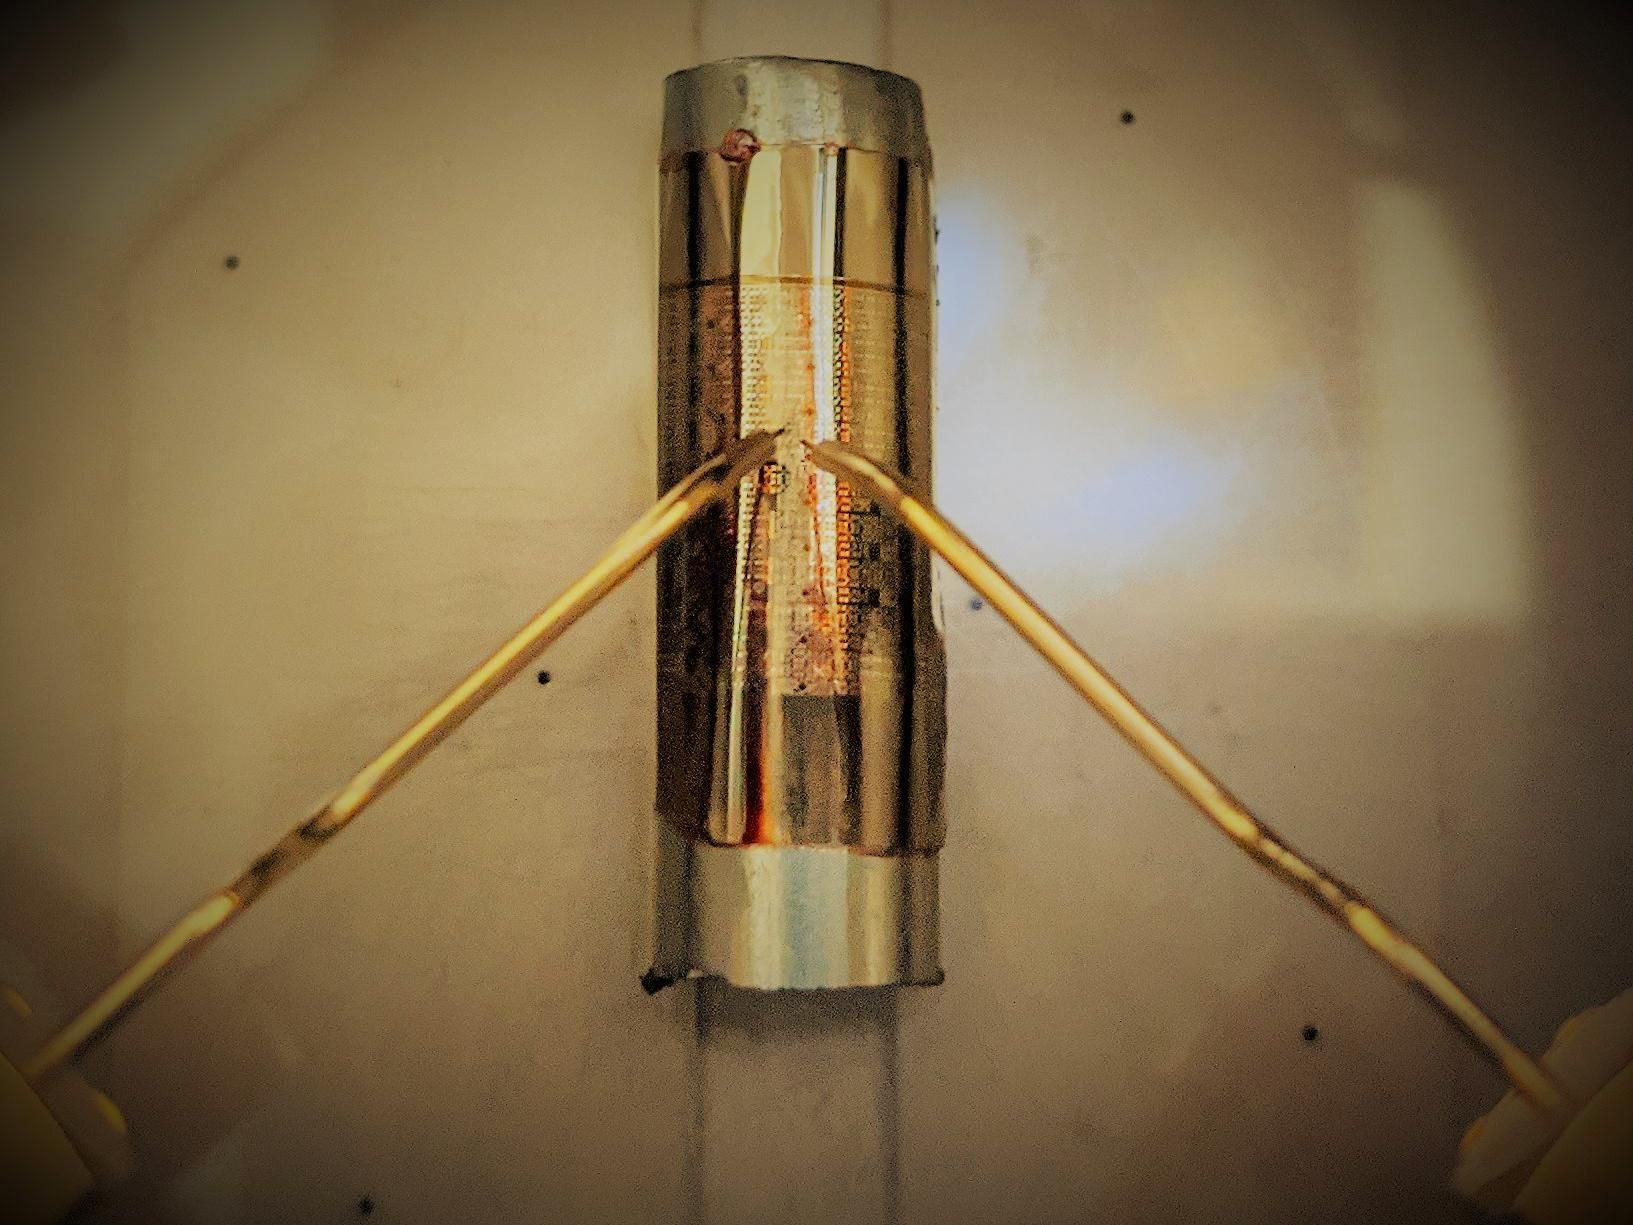 Two gold metallic probes hover over a silverish cyindrical shape, on which lies a golden shape that bends to the cylinder, and has golden and brown etchings on it.